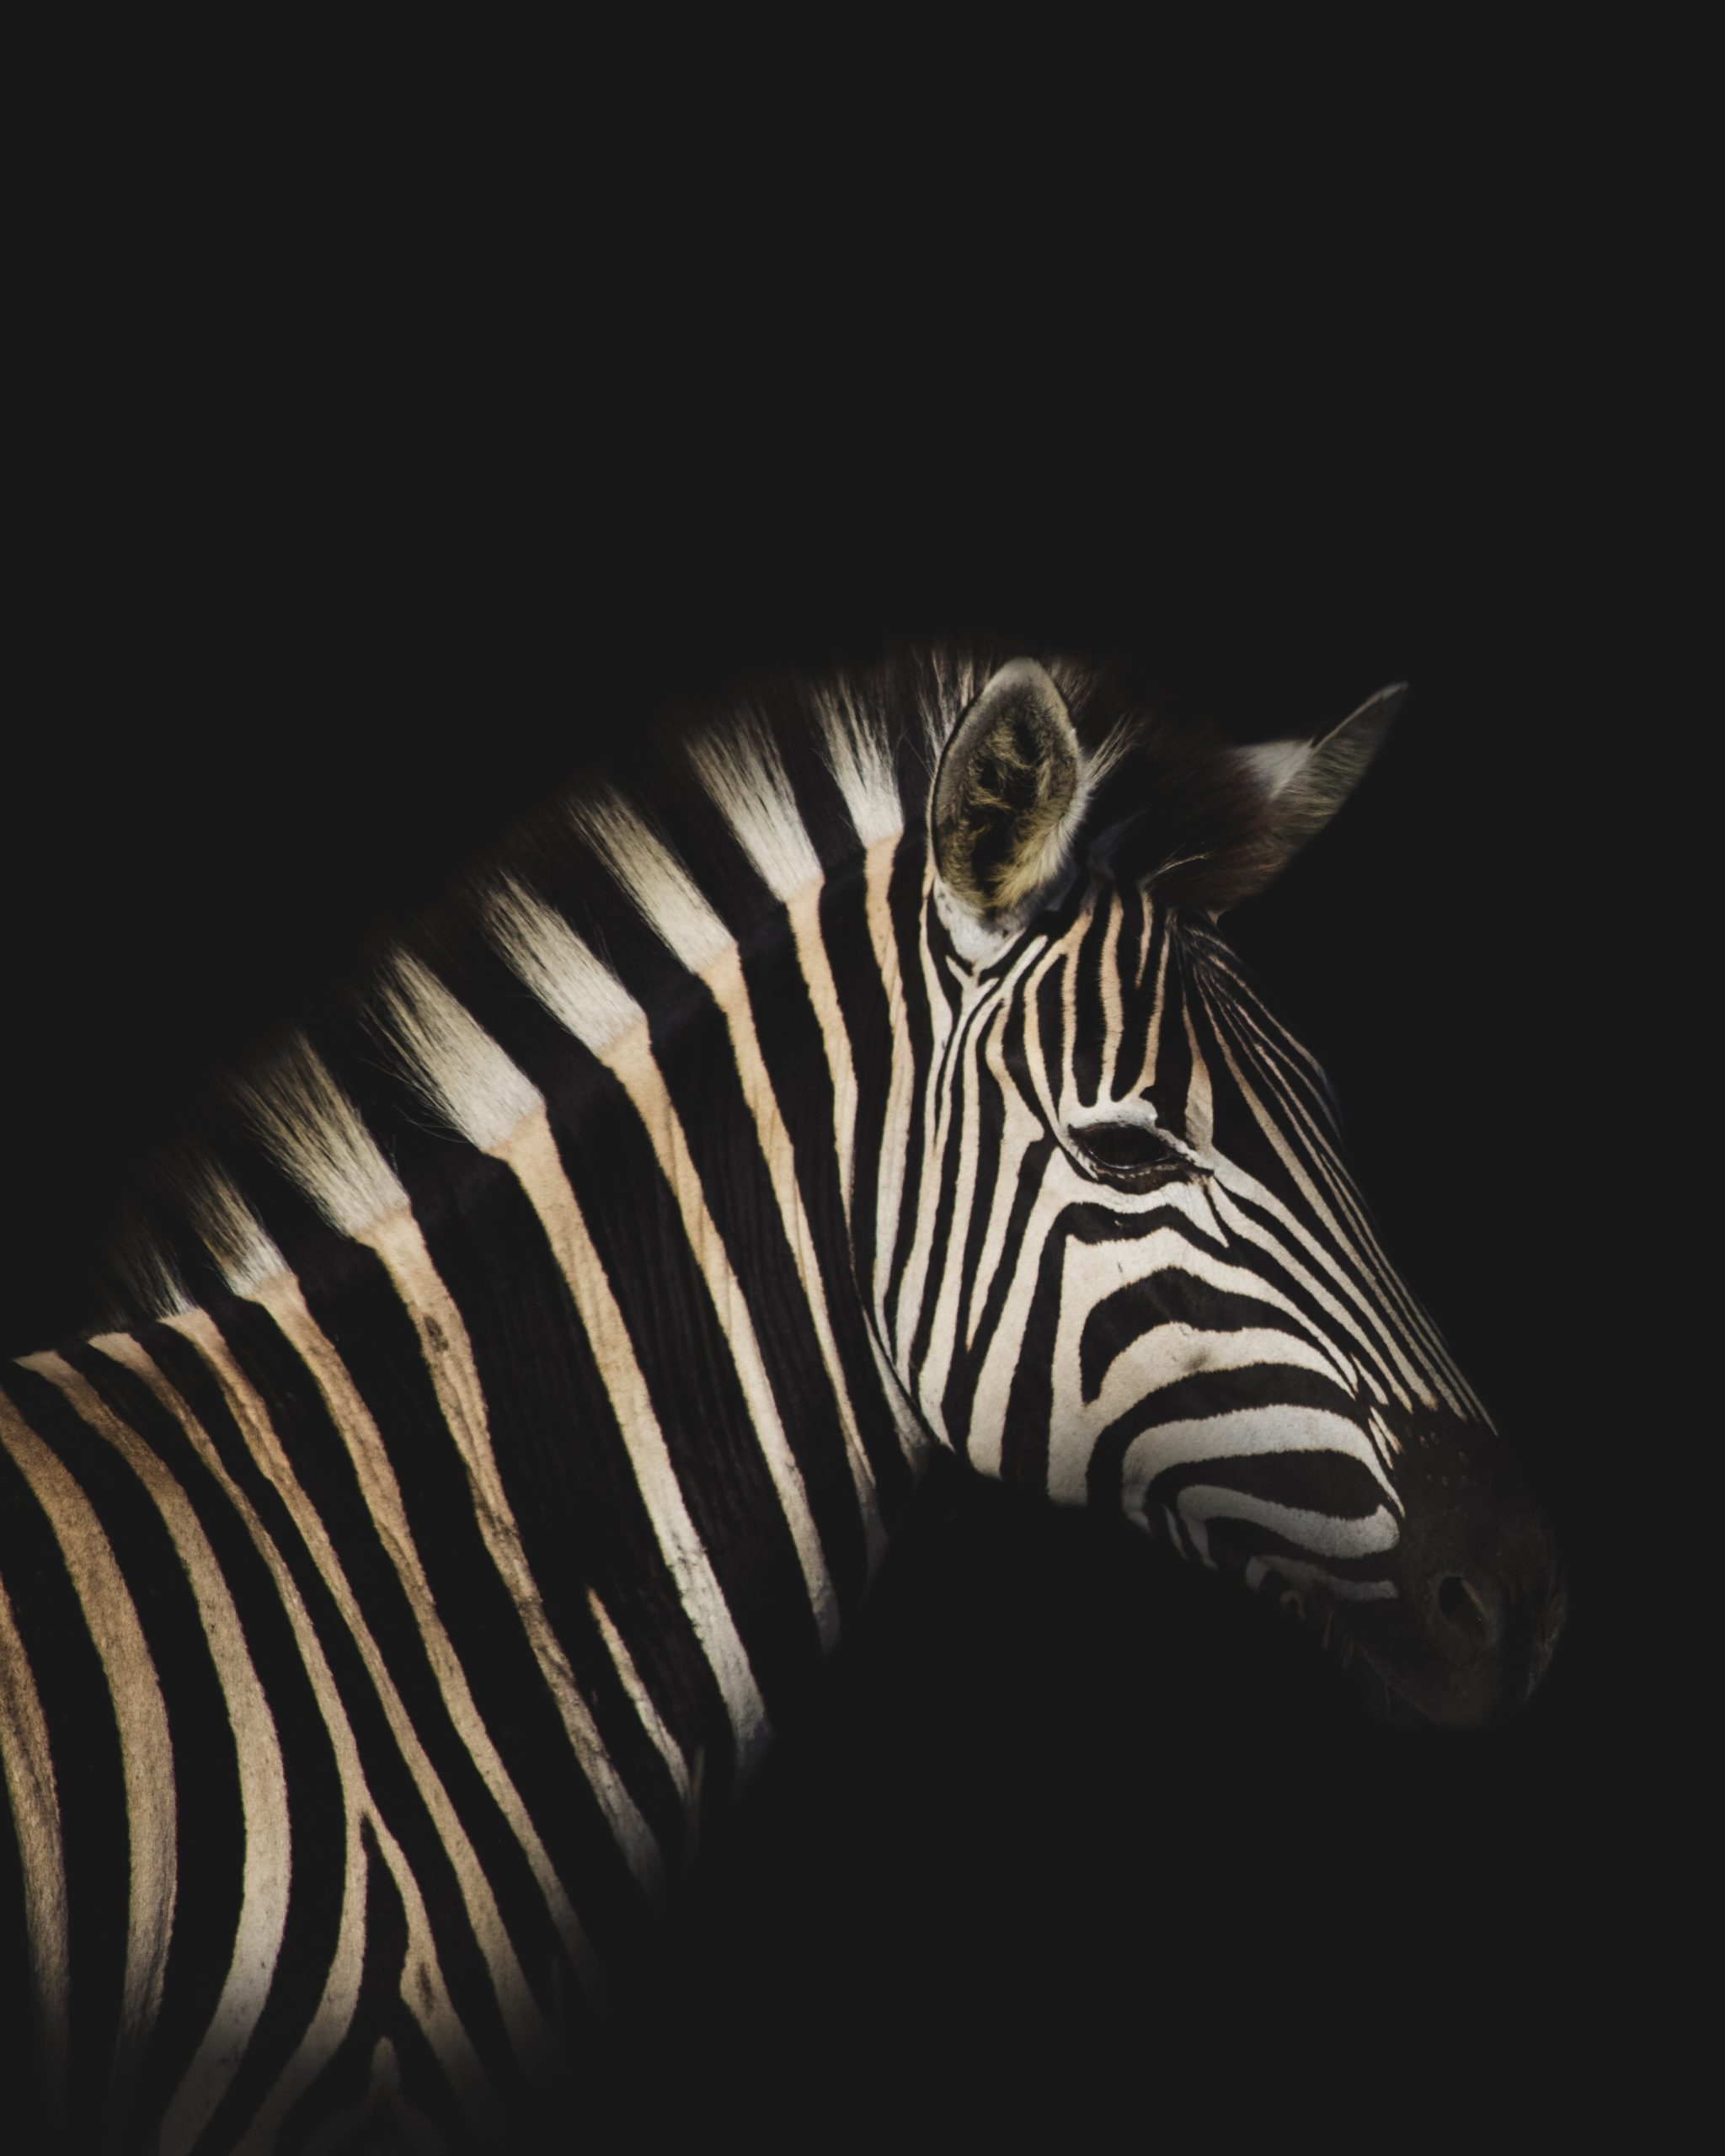 A zebra stands in front of a black background, his eyes half closed, his black stripes blending into the background.